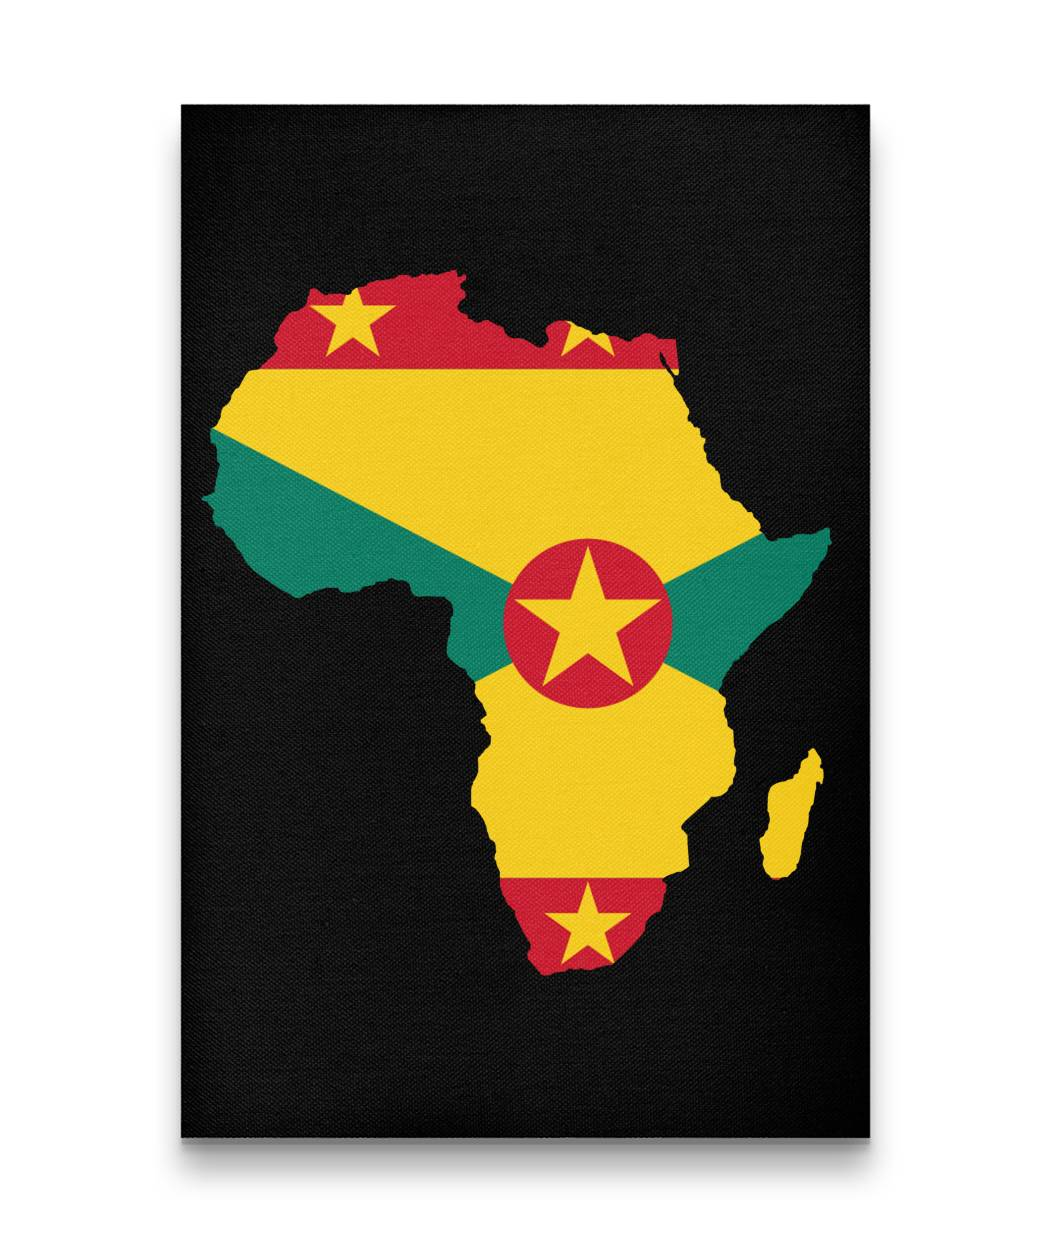 CARIBBEAN CONTINENT GRENADA CANVAS ART - Rice & Tees